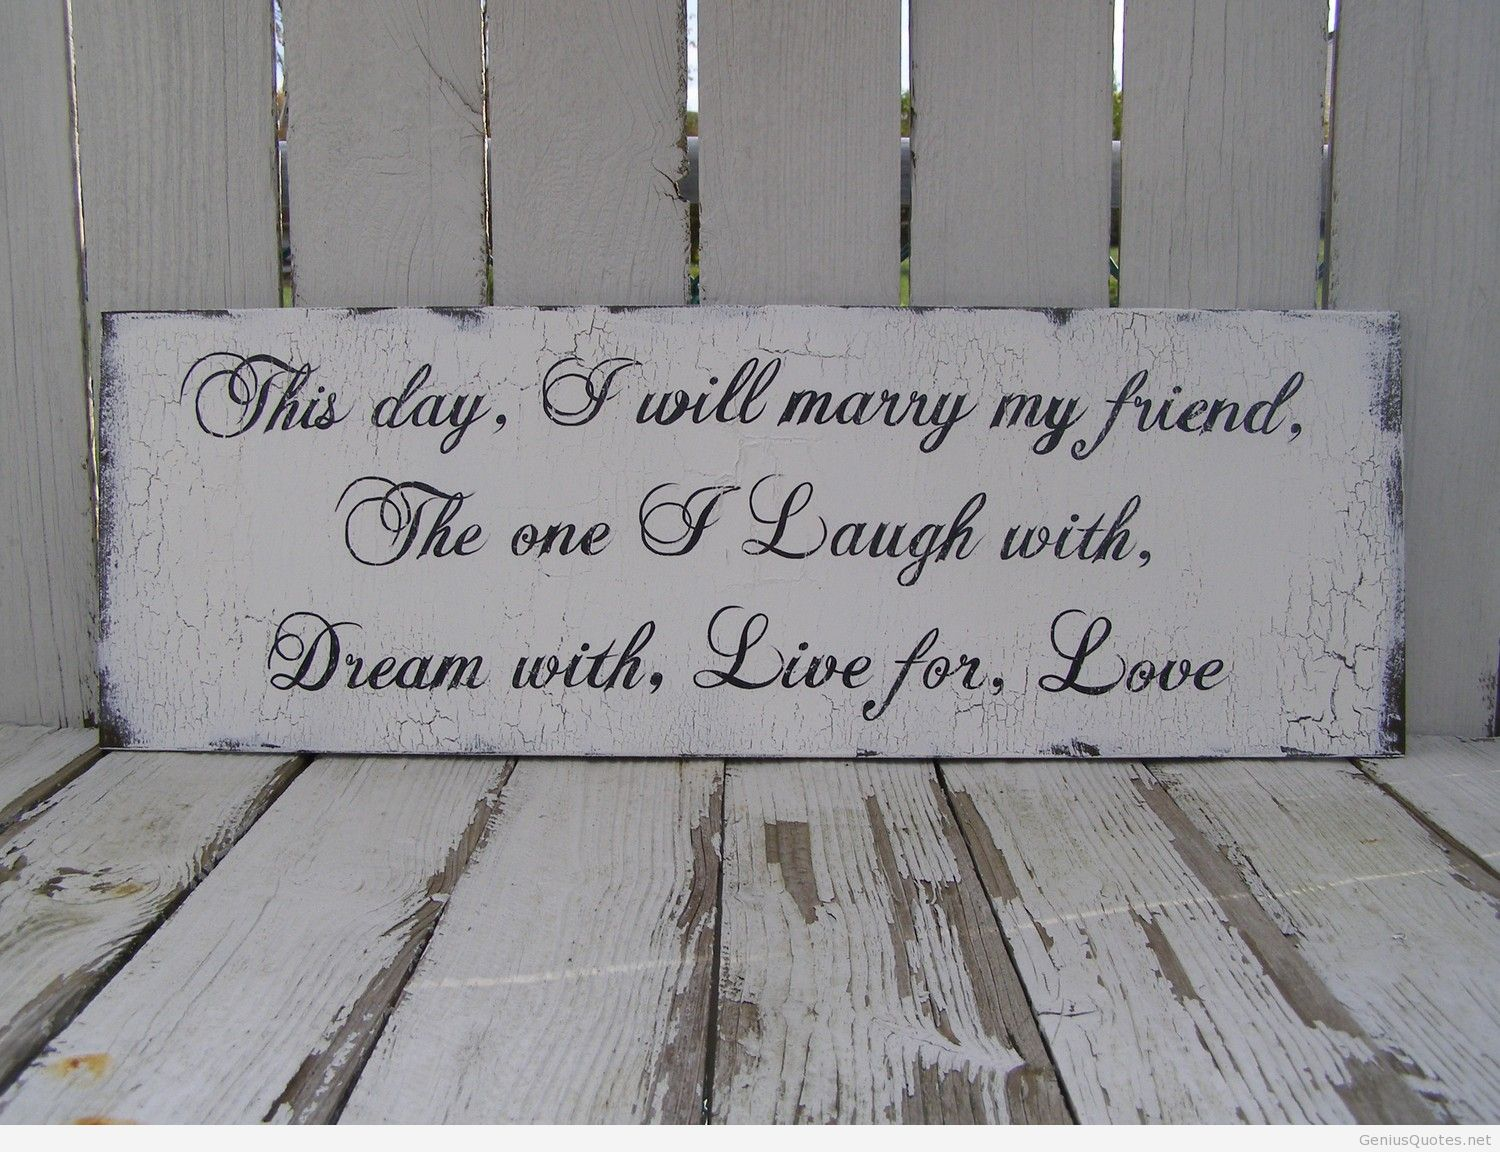 Quotes About Marriage Wedding 42 Quotes